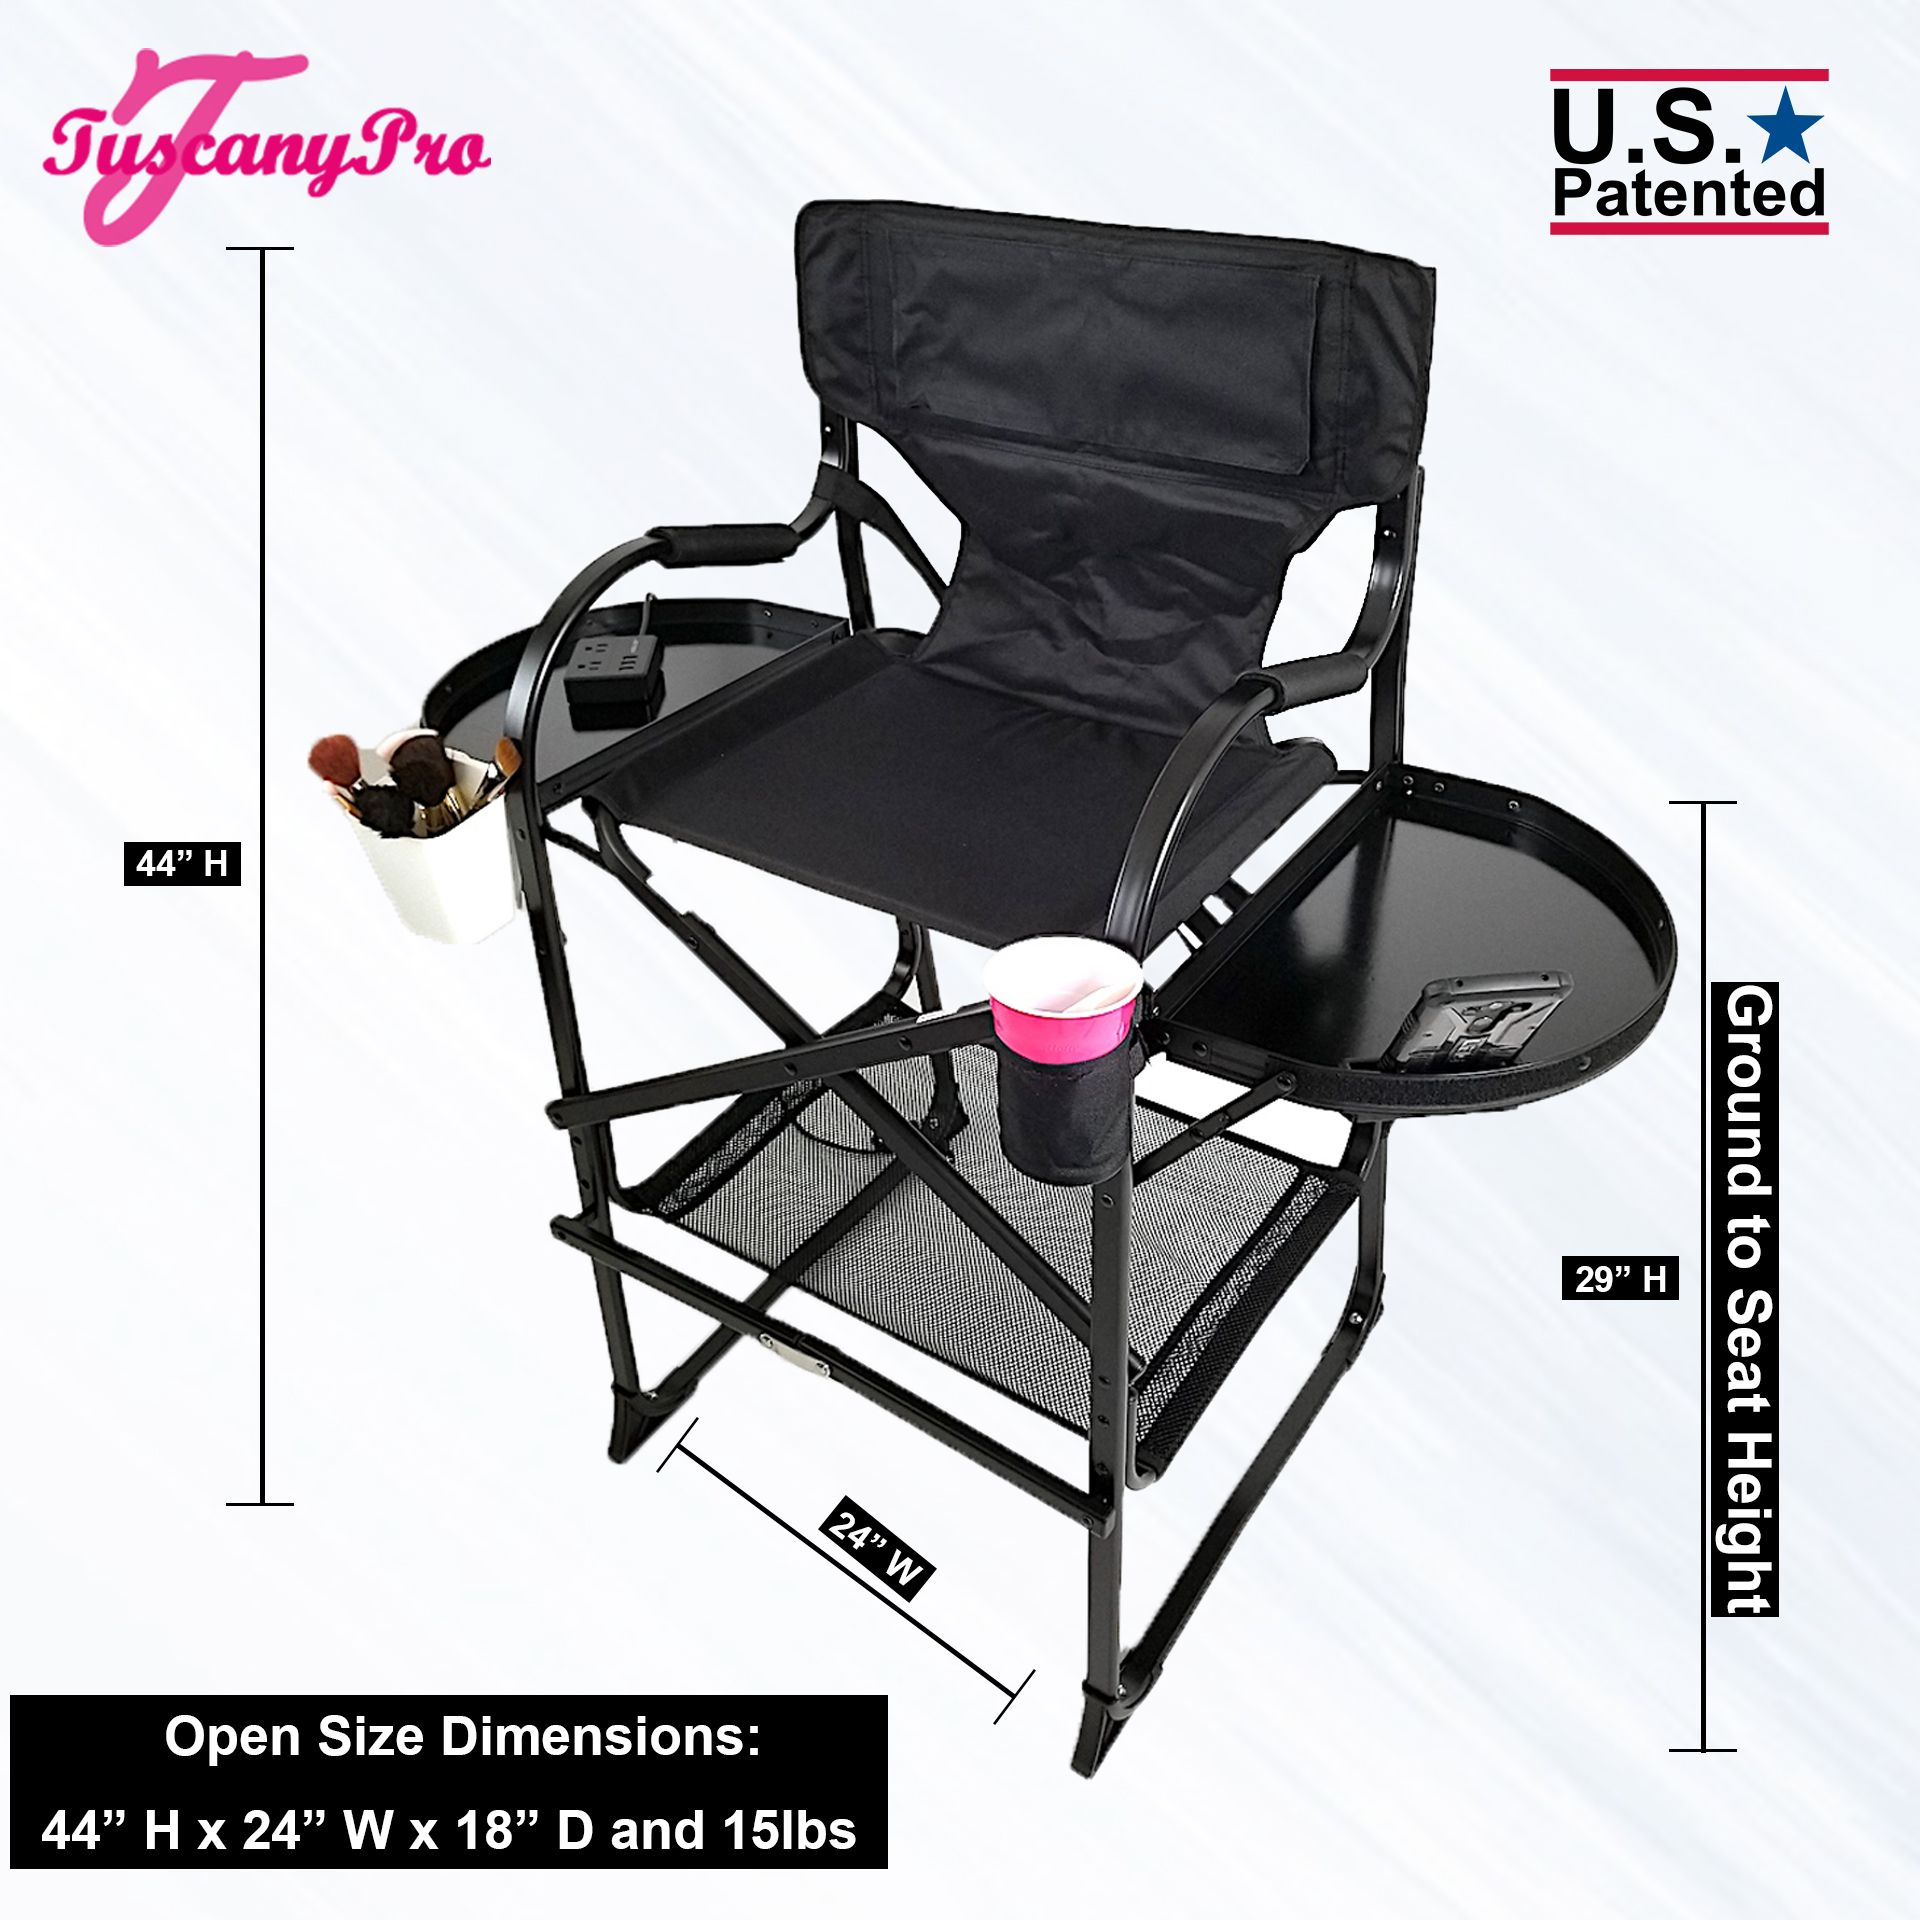 2019 Tuscanypro Tall Makeup Chair W